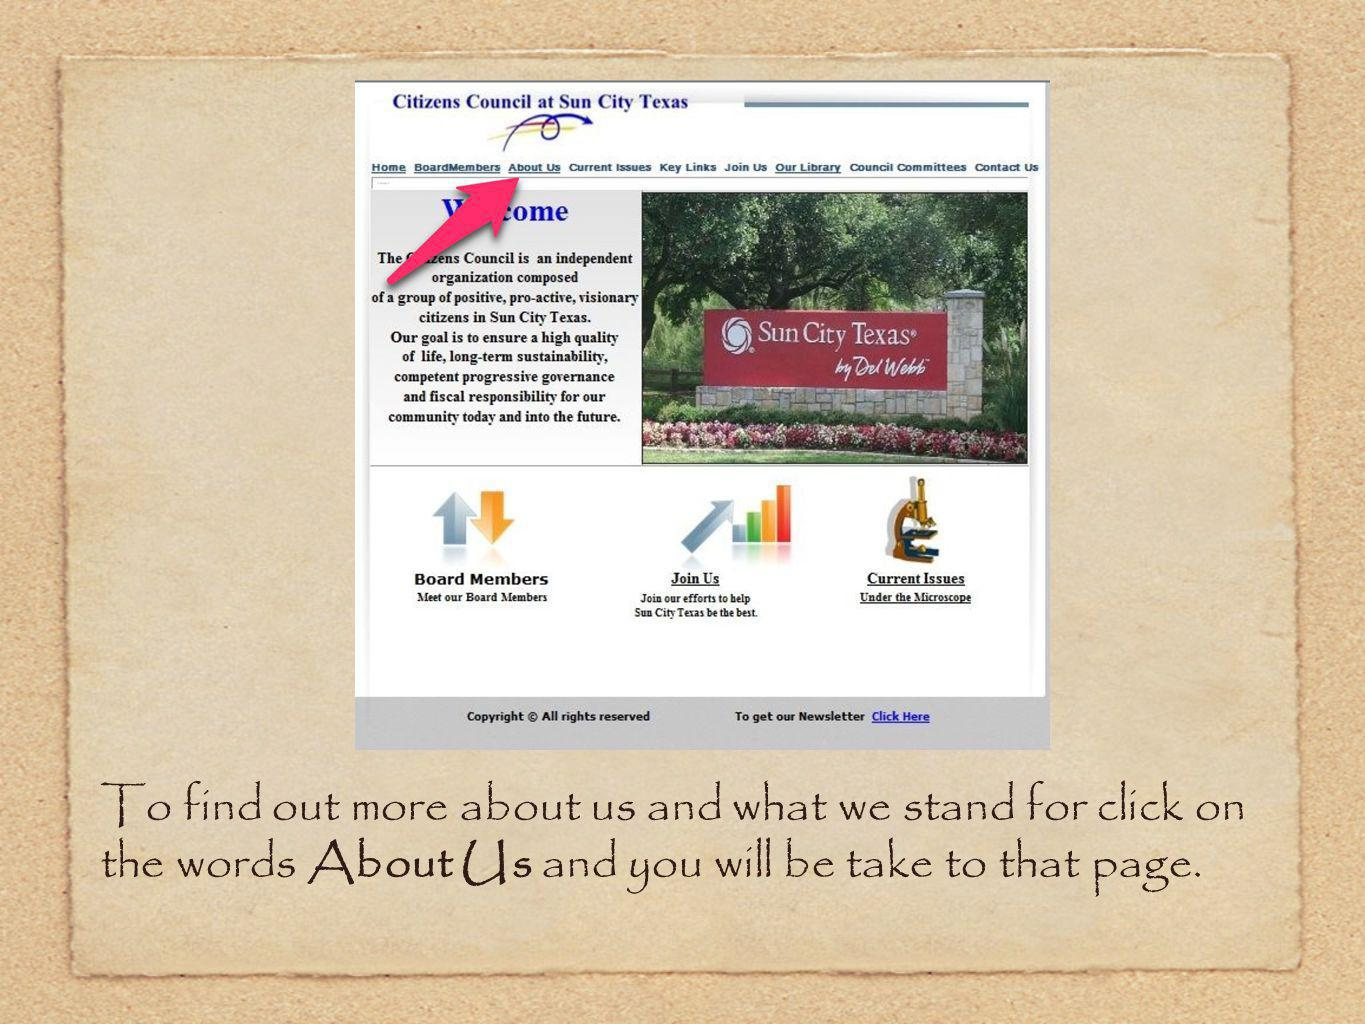 To find out more about us and what we stand for click on the words About Us and you will be take to that page.